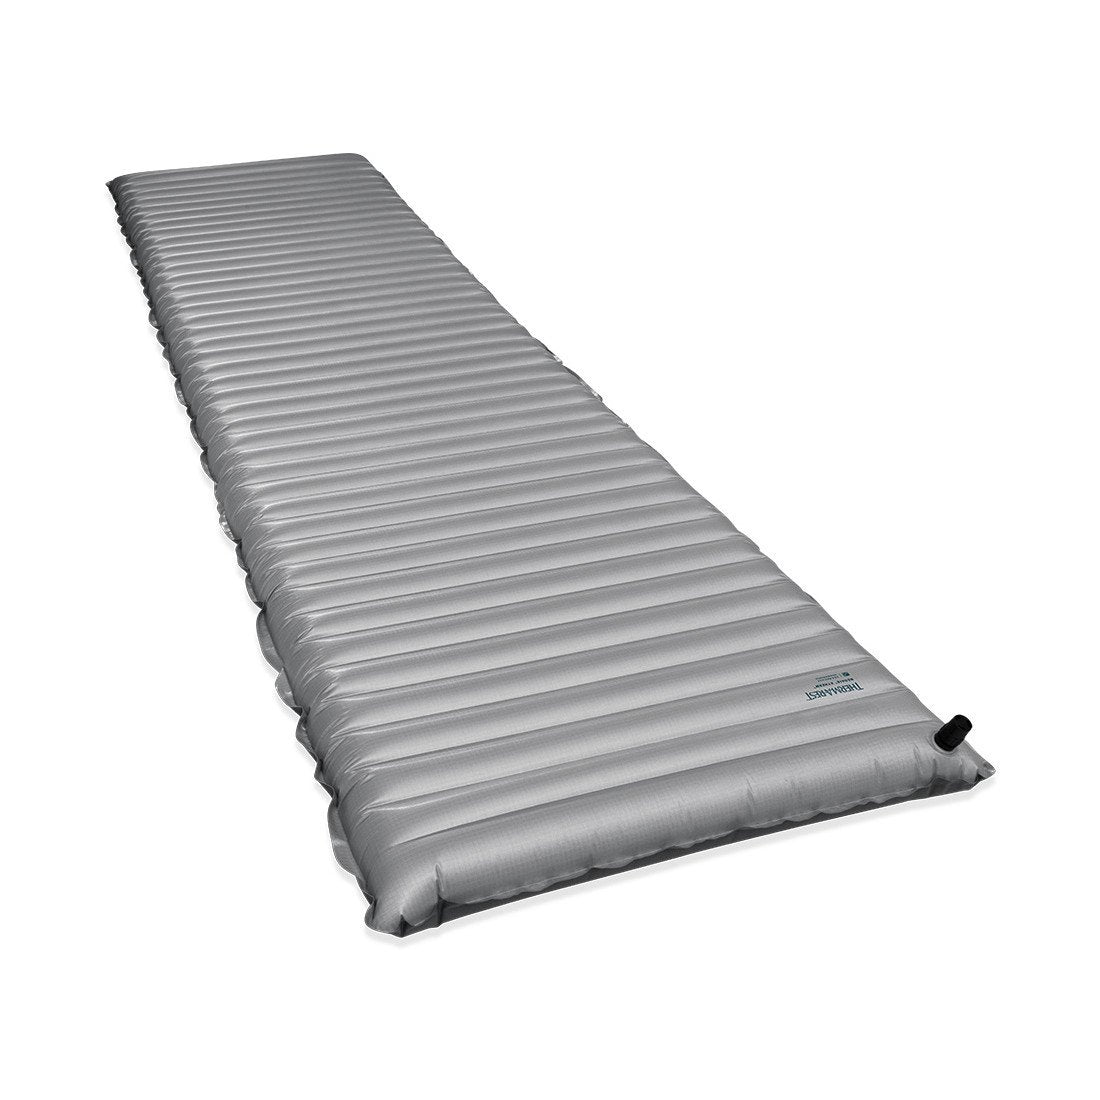 Thermarest NeoThermarest NeoAir Xtherm Max Regular camping mat, shown inflated and laid flat